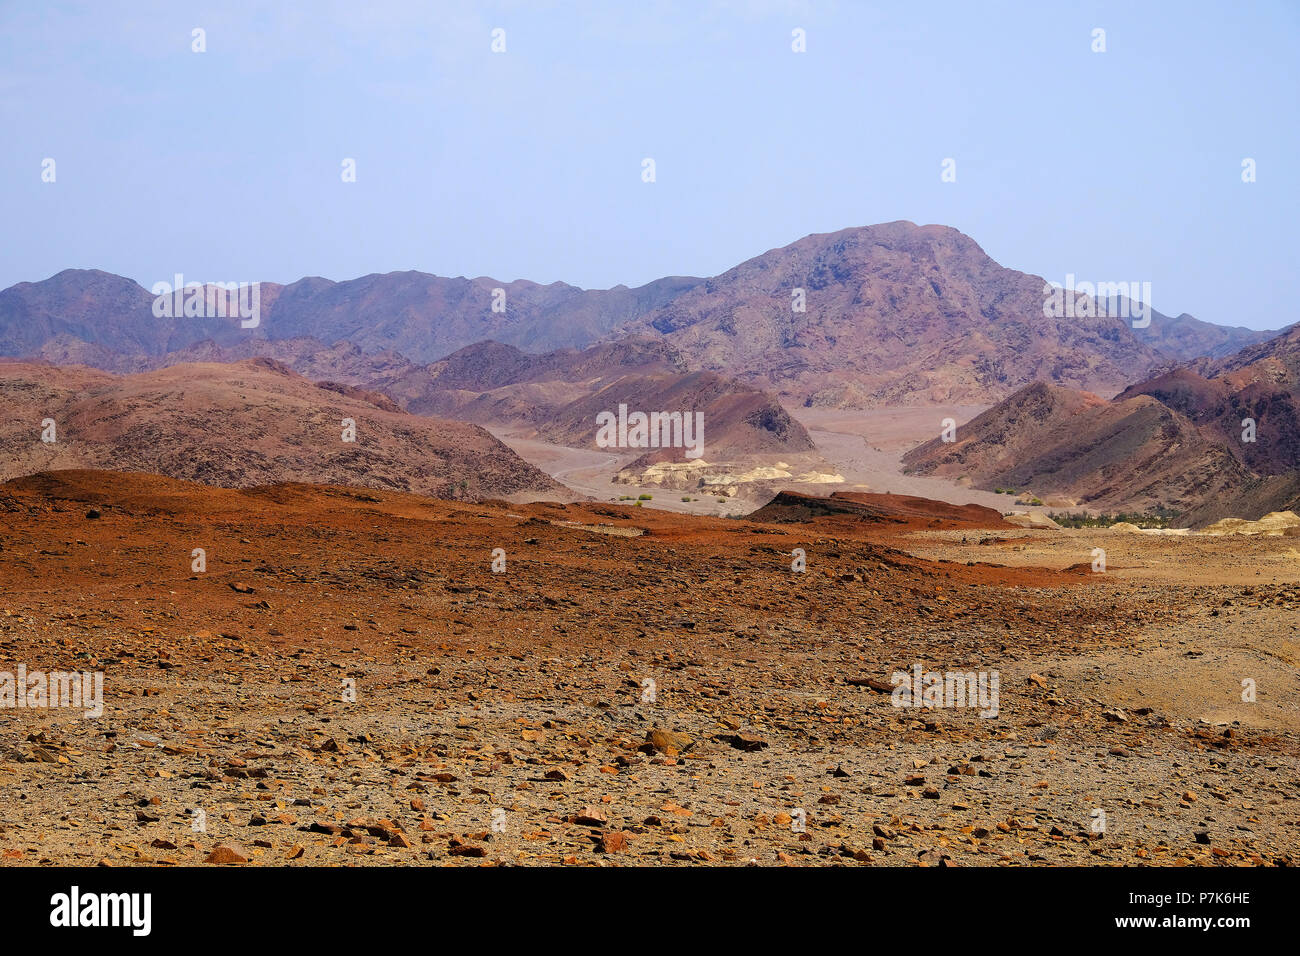 Rocky mountain landscape with marlstones deposits on the Hoarusib River - Stock Image